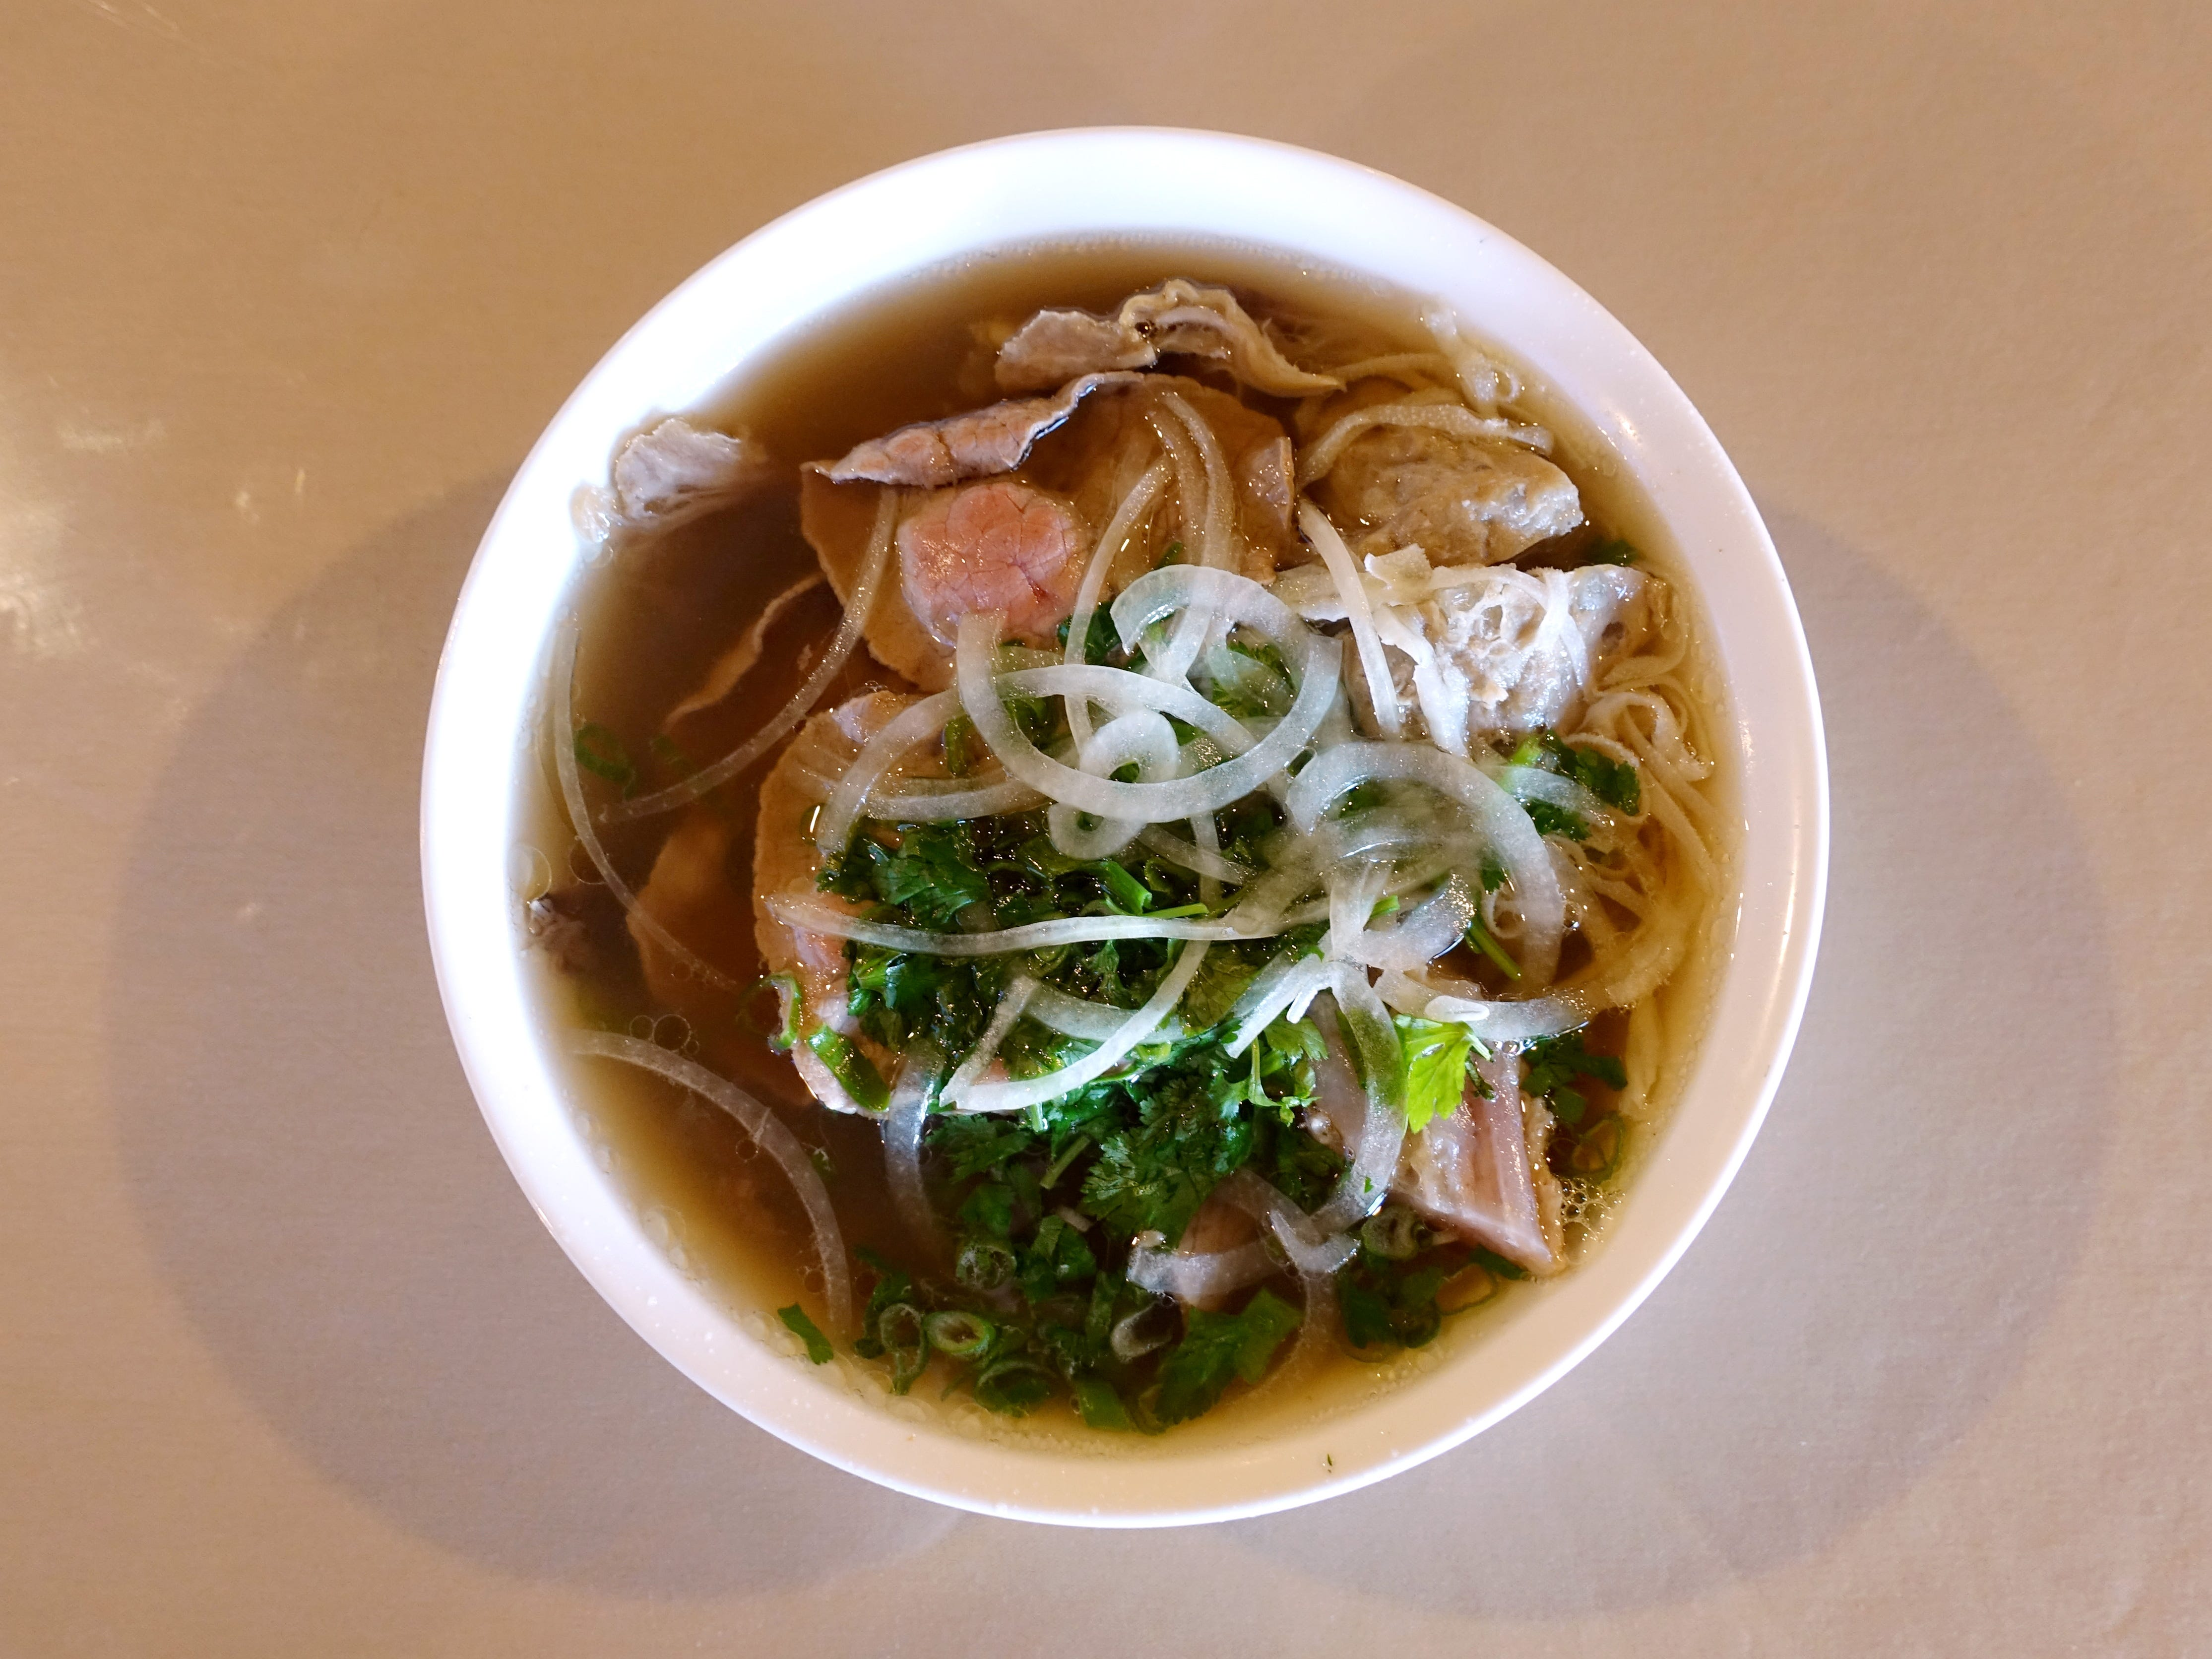 Pho dac biet at AZ Pho & Grill in Chandler.